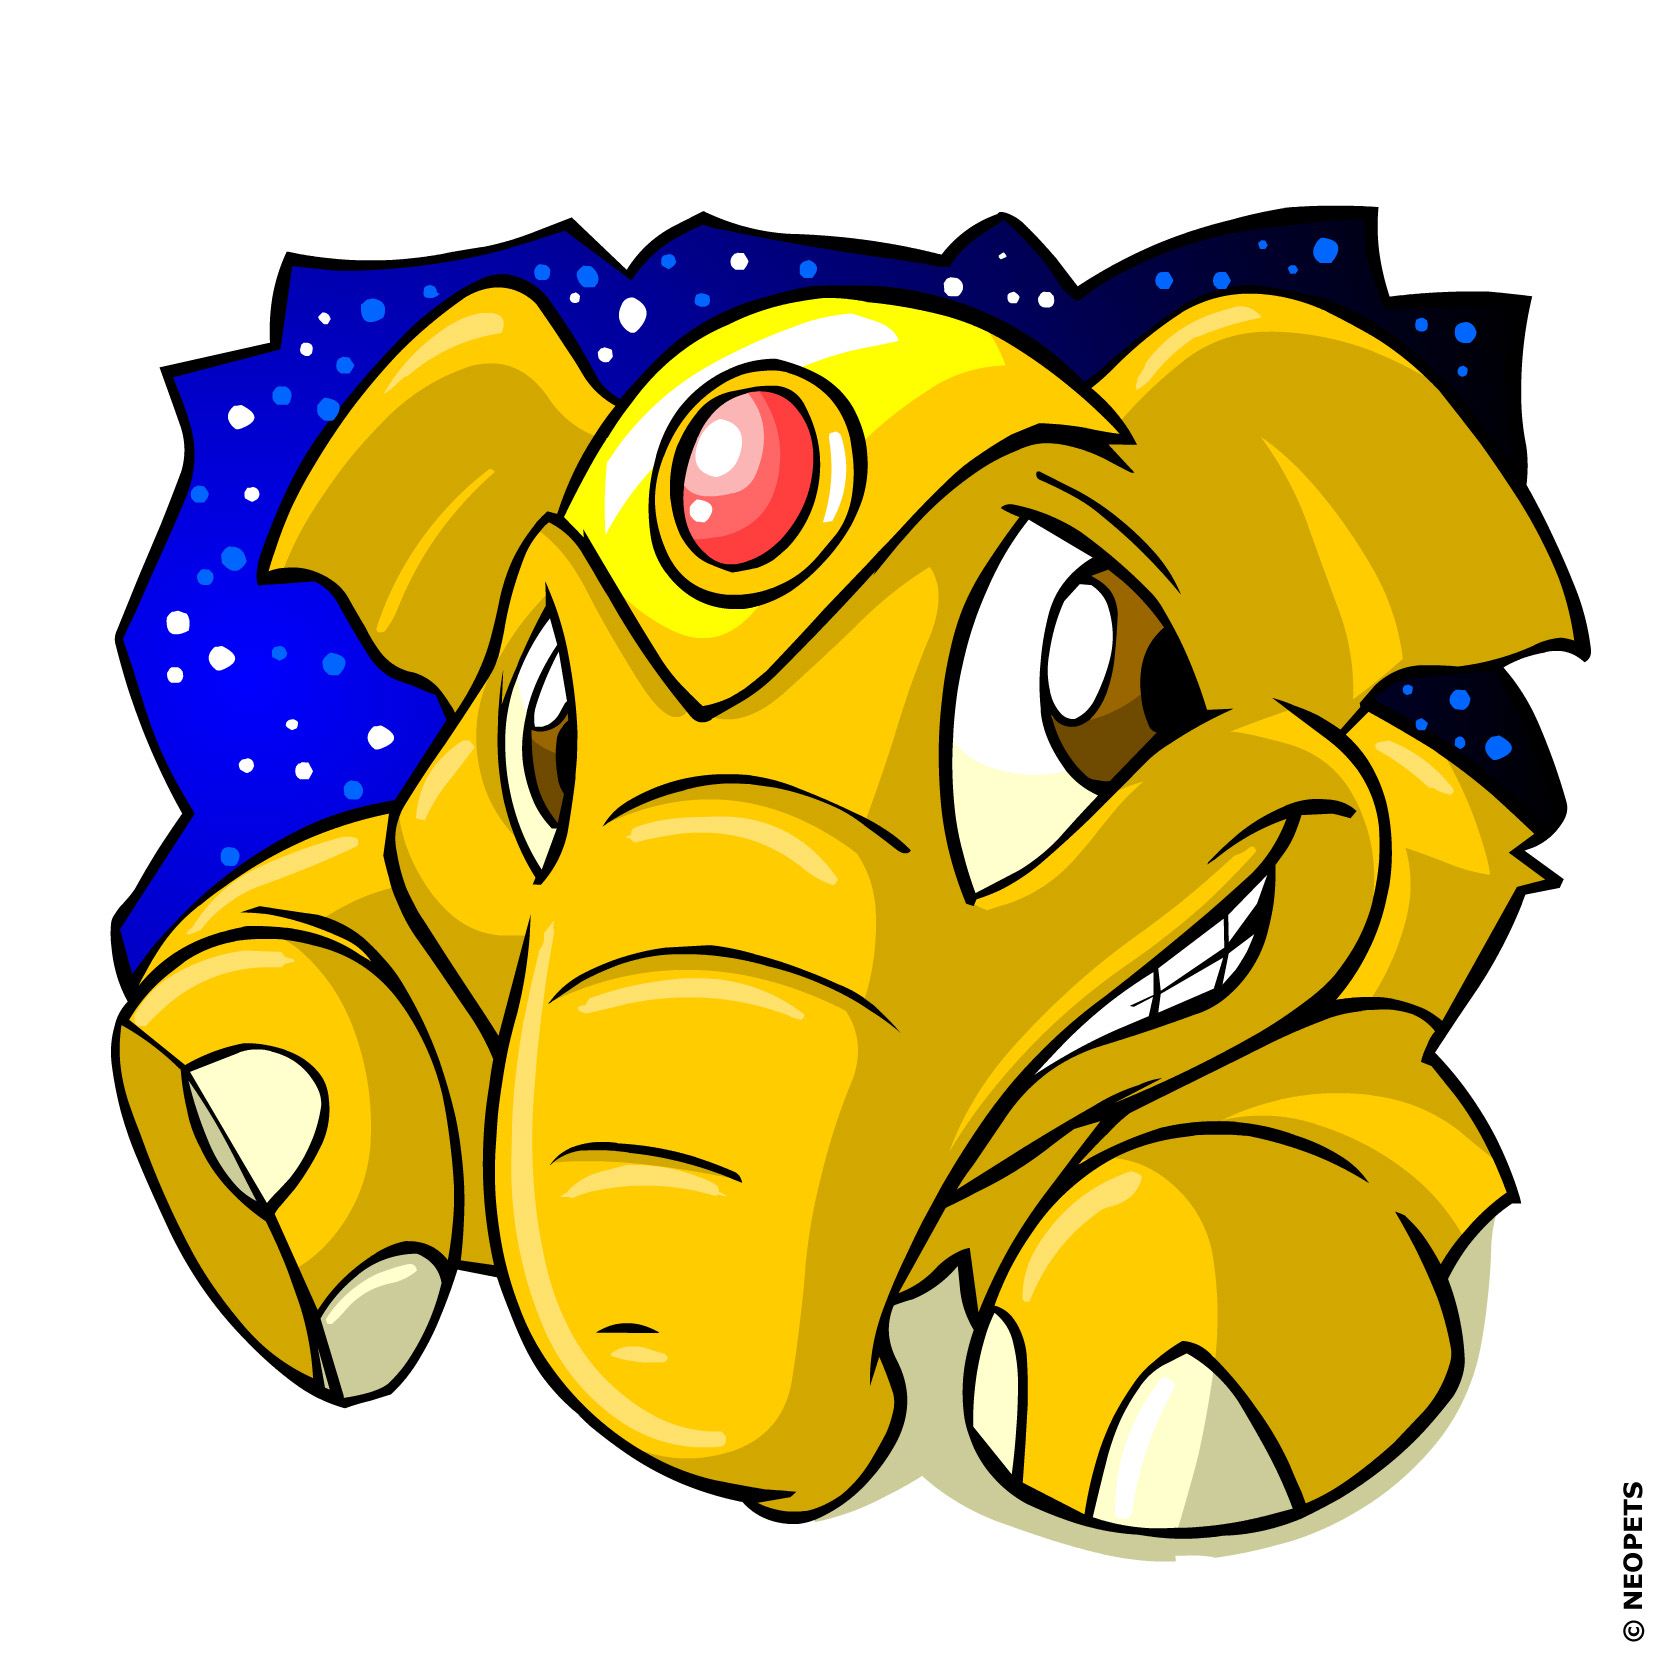 http://images.neopets.com/press/elephante_1.jpg